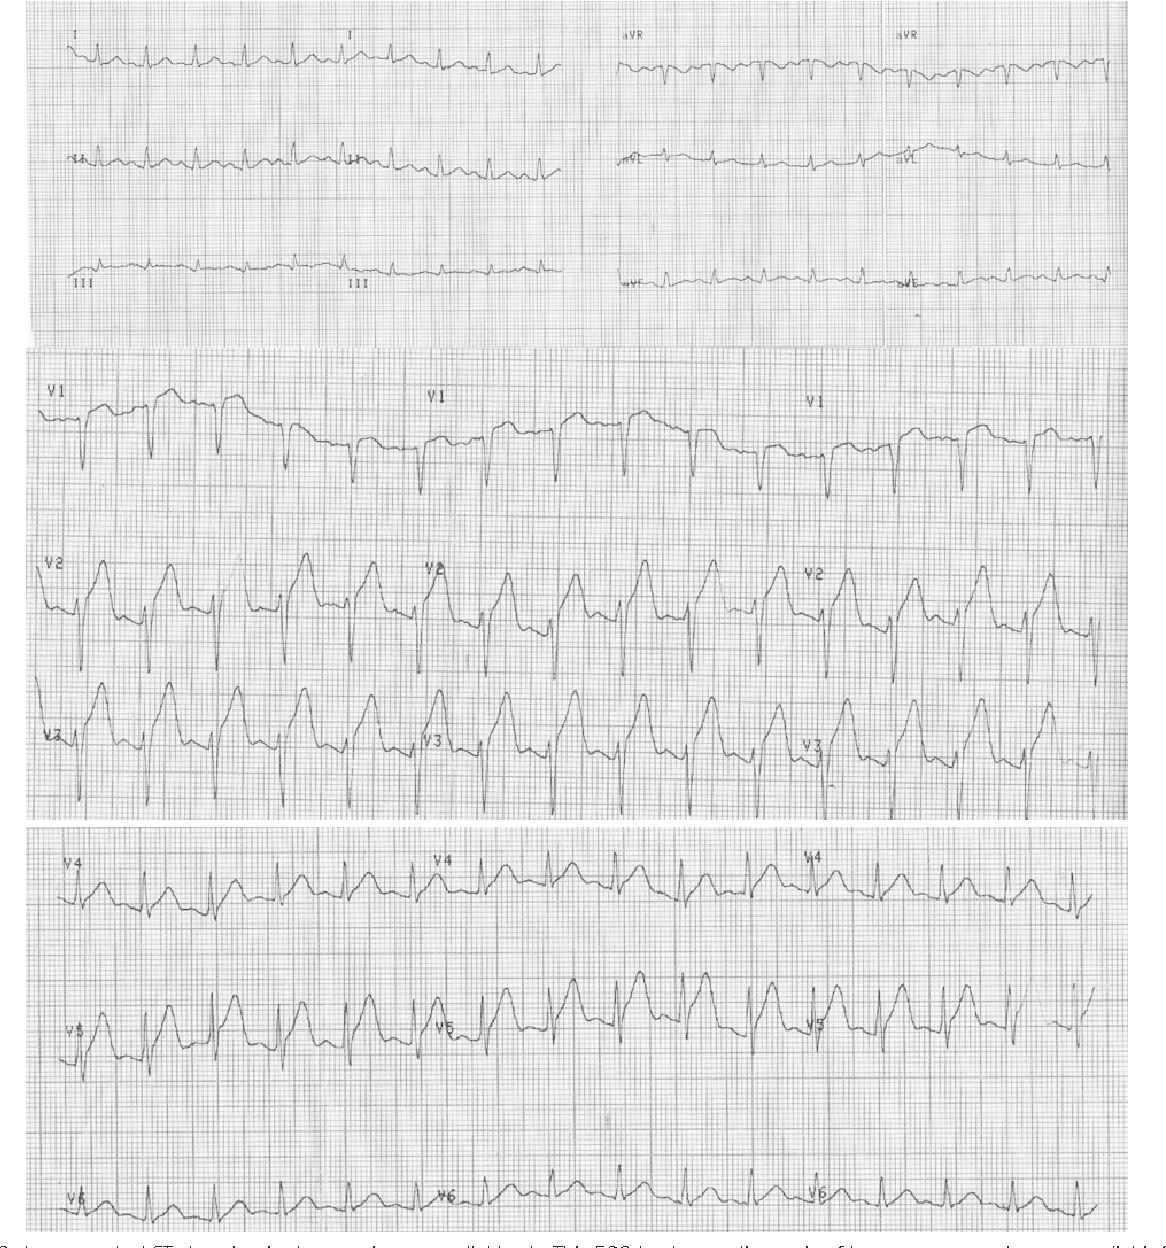 Fig. 1. The ECG shows marked ST elevation in the anterior precordial leads. This ECG leads to a diagnosis of hyperacute anterior myocardial infarction. ECG: electrocardiography.